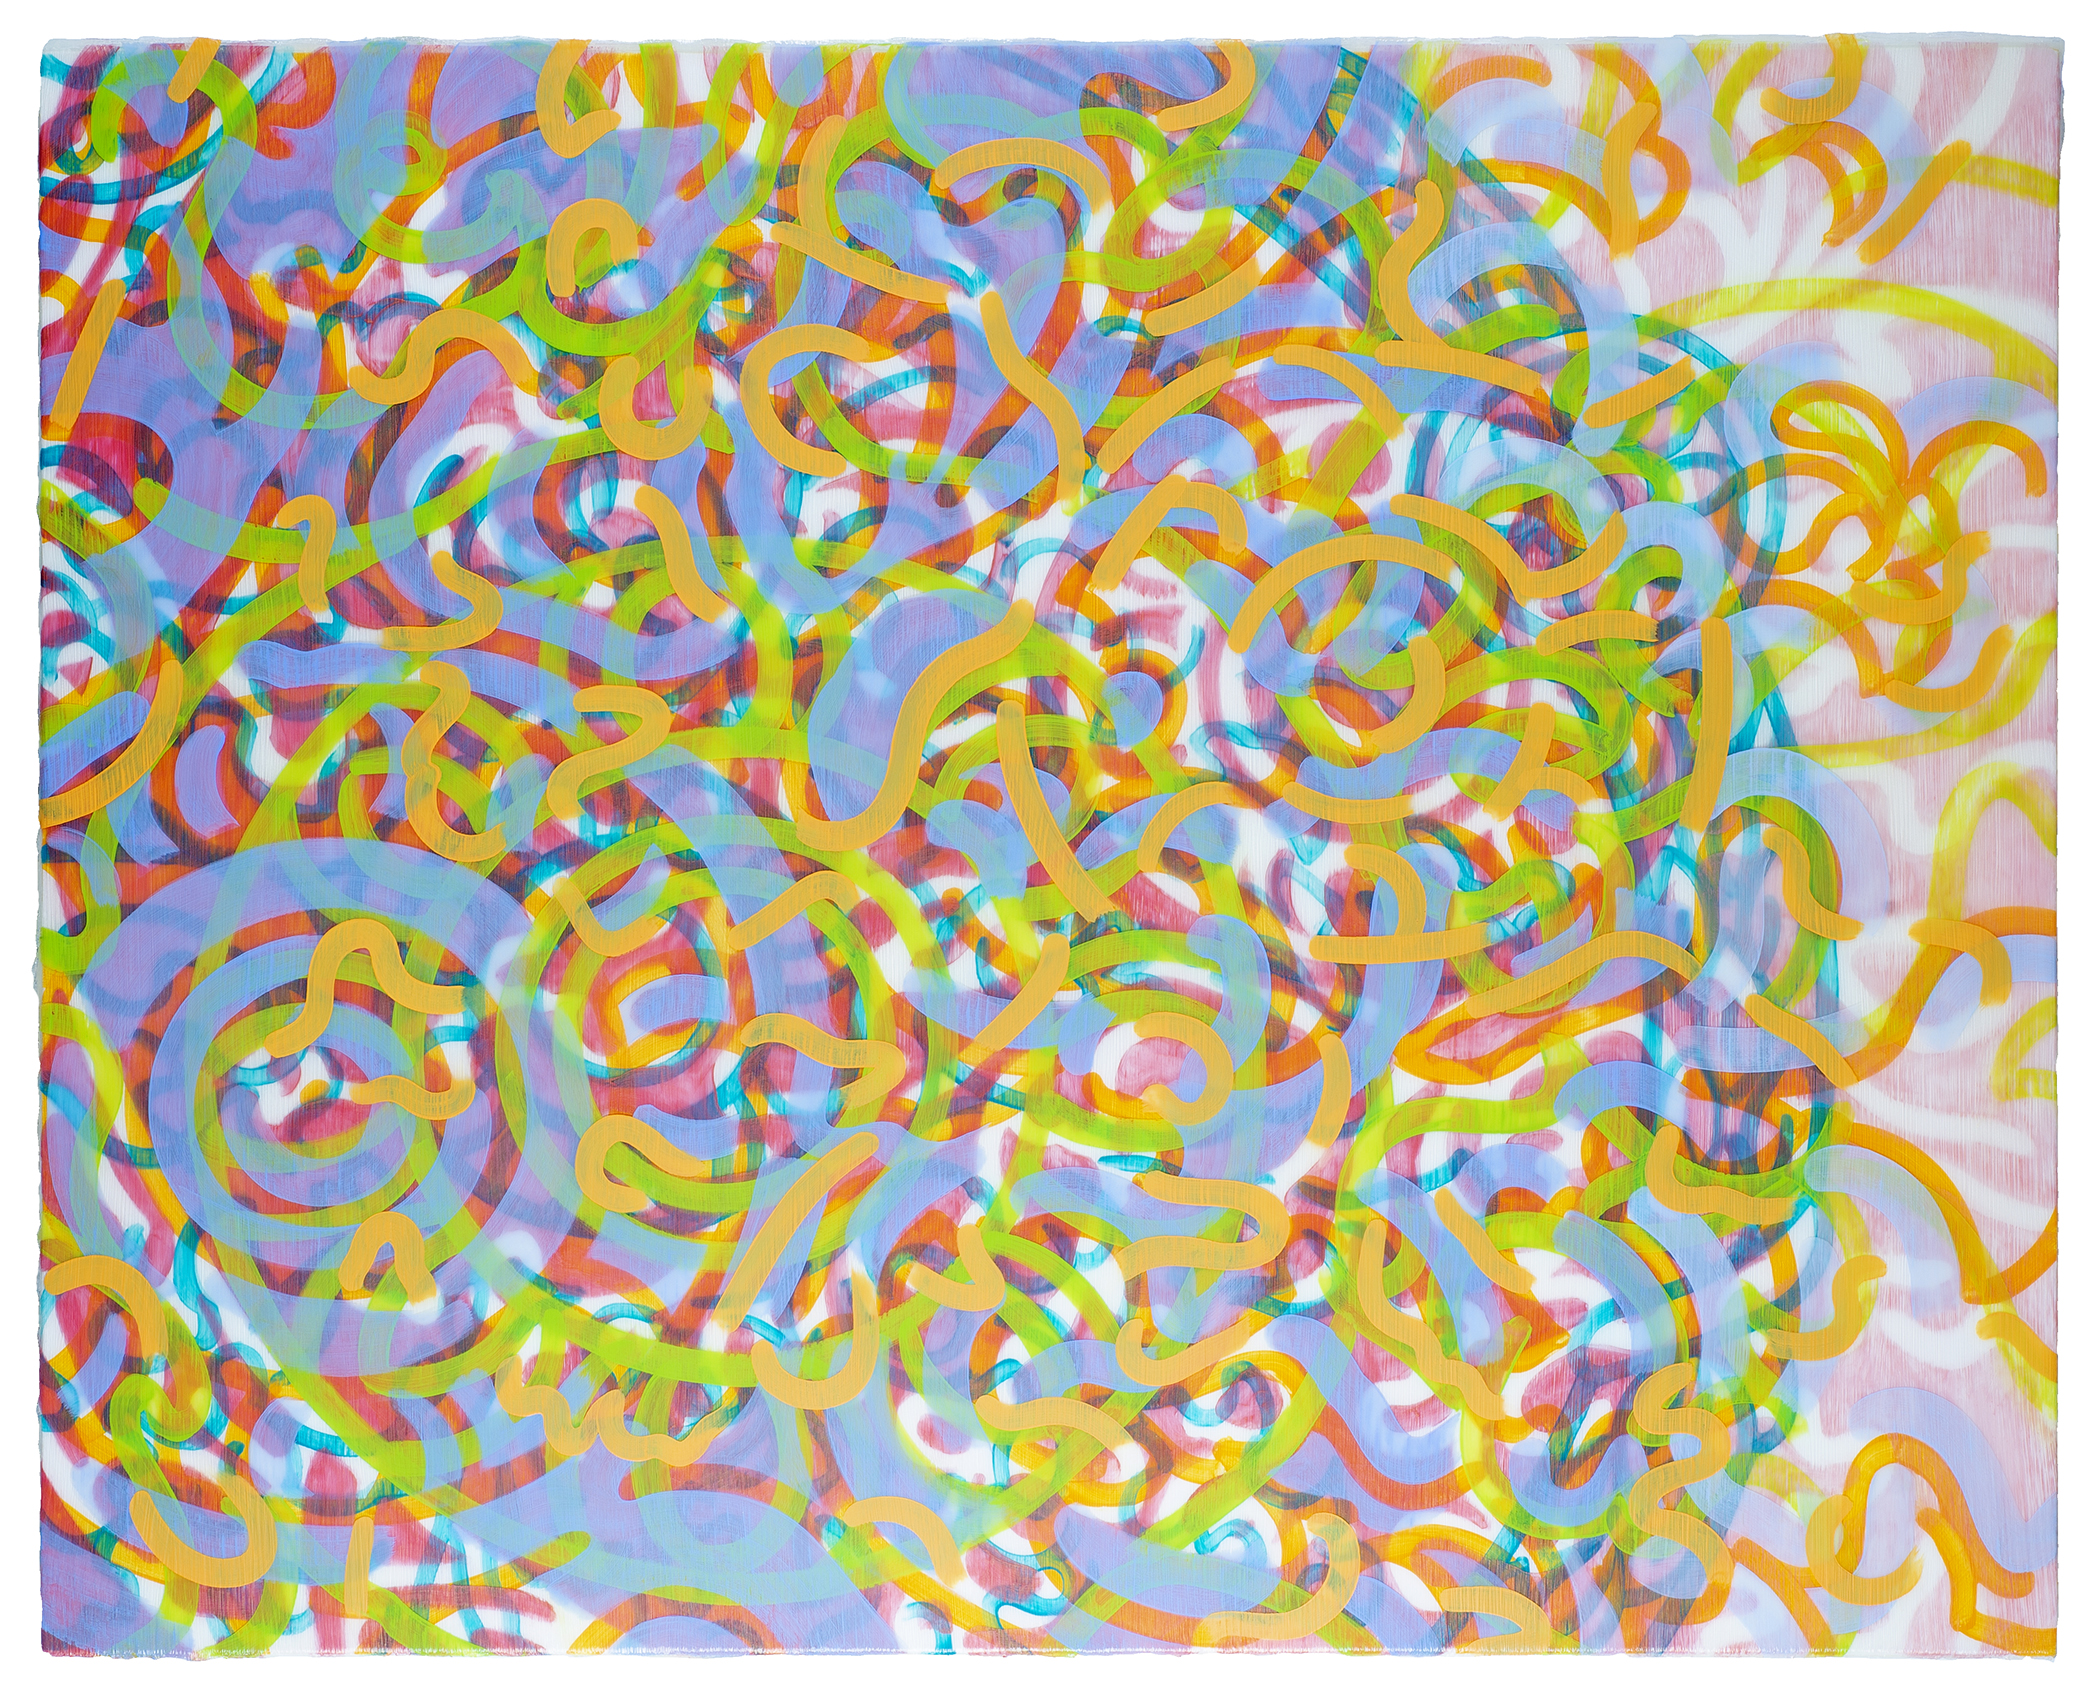 Full Circle VII (white) 2021 acrylic on canvas on board 40x50in